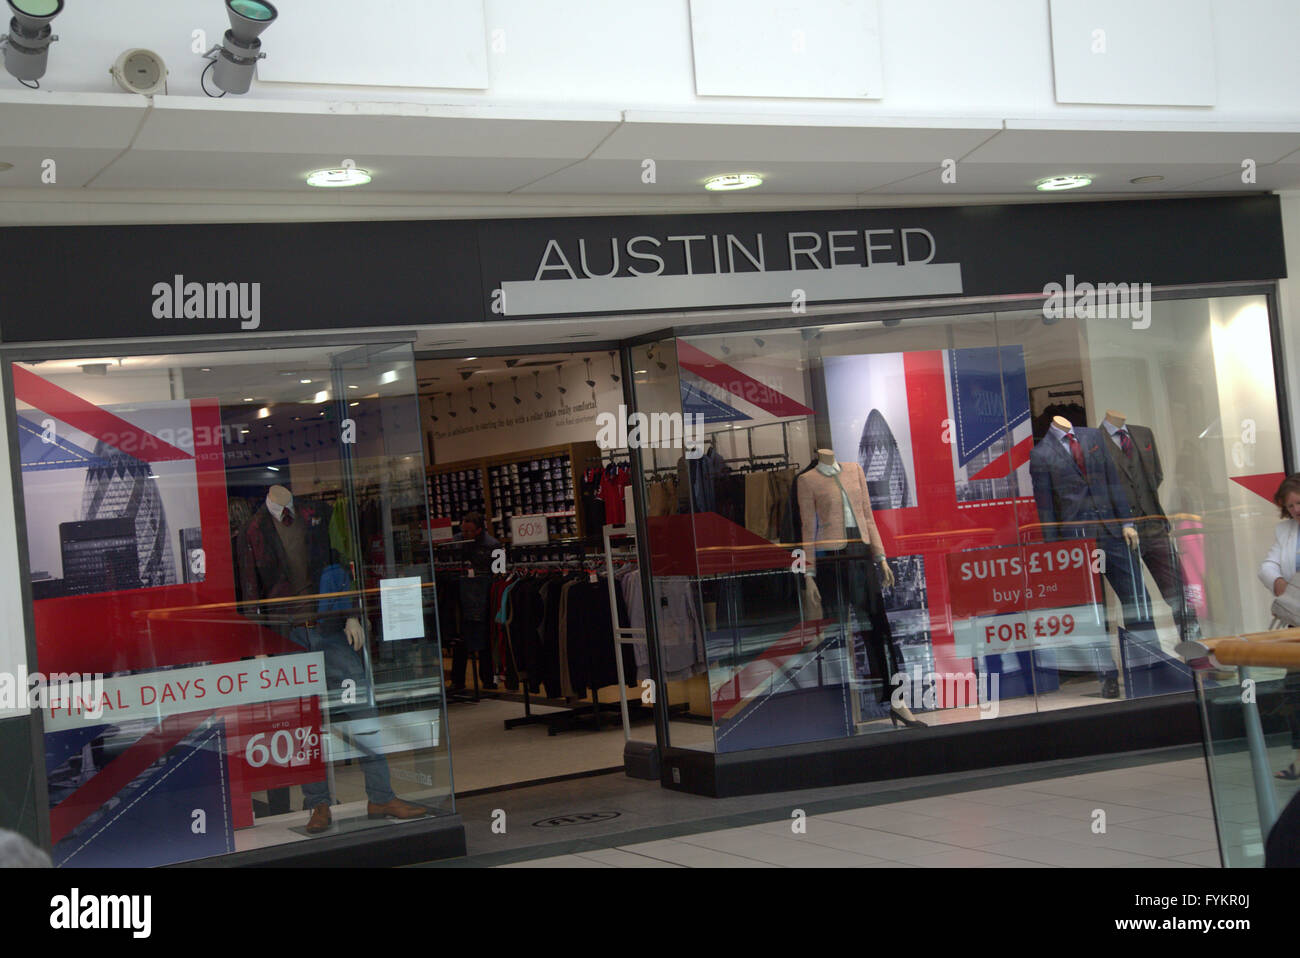 Austin Reed Uk High Resolution Stock Photography And Images Alamy